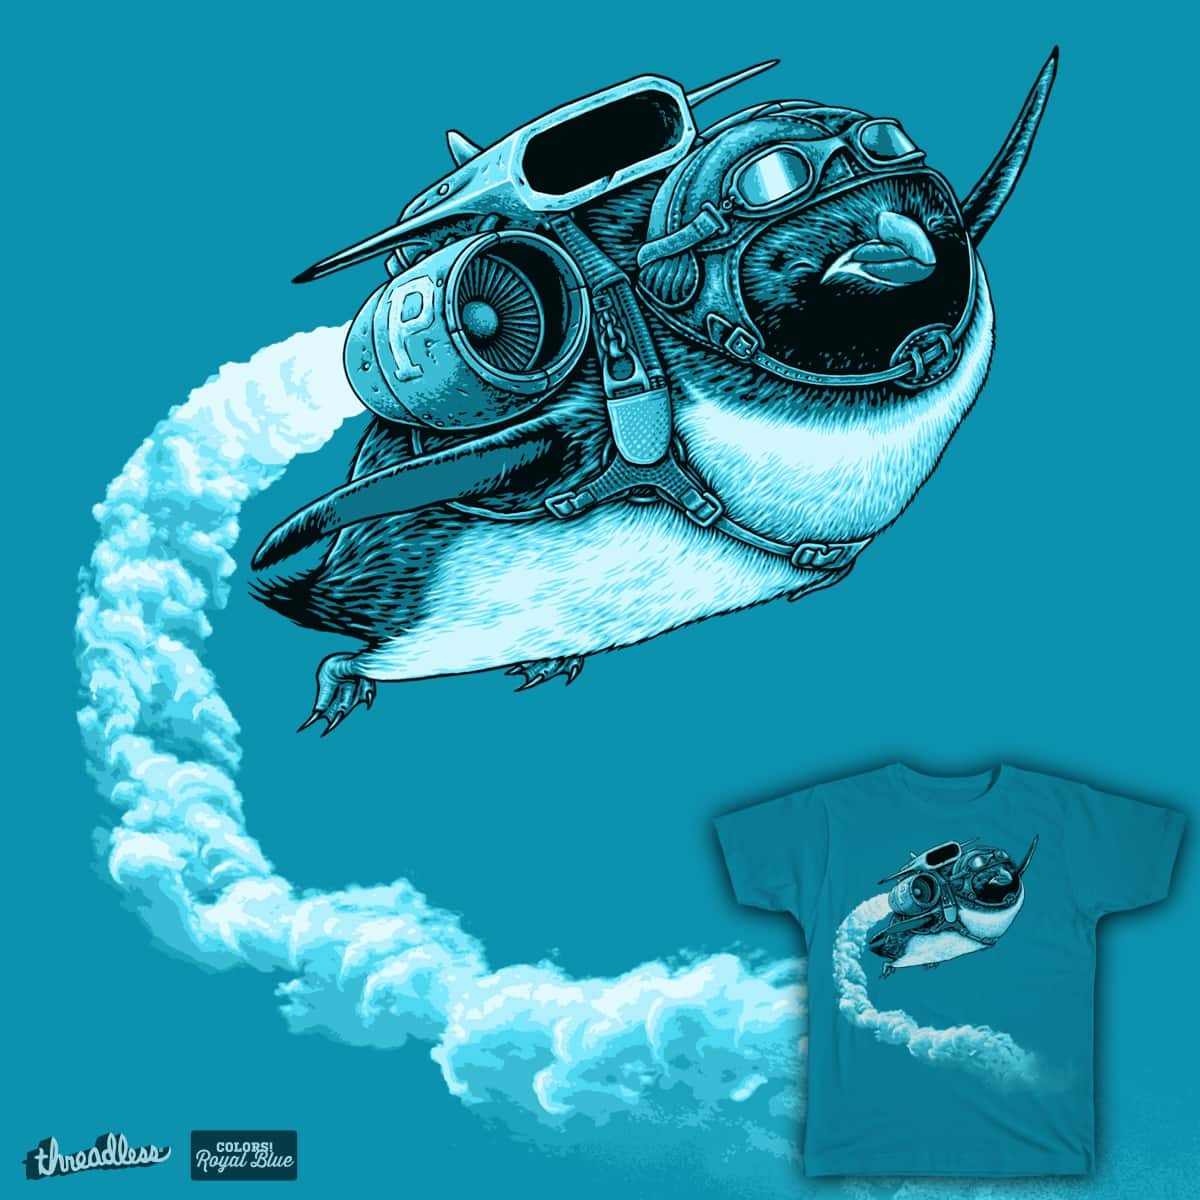 FLYING PENGUIN by aanmyers on Threadless